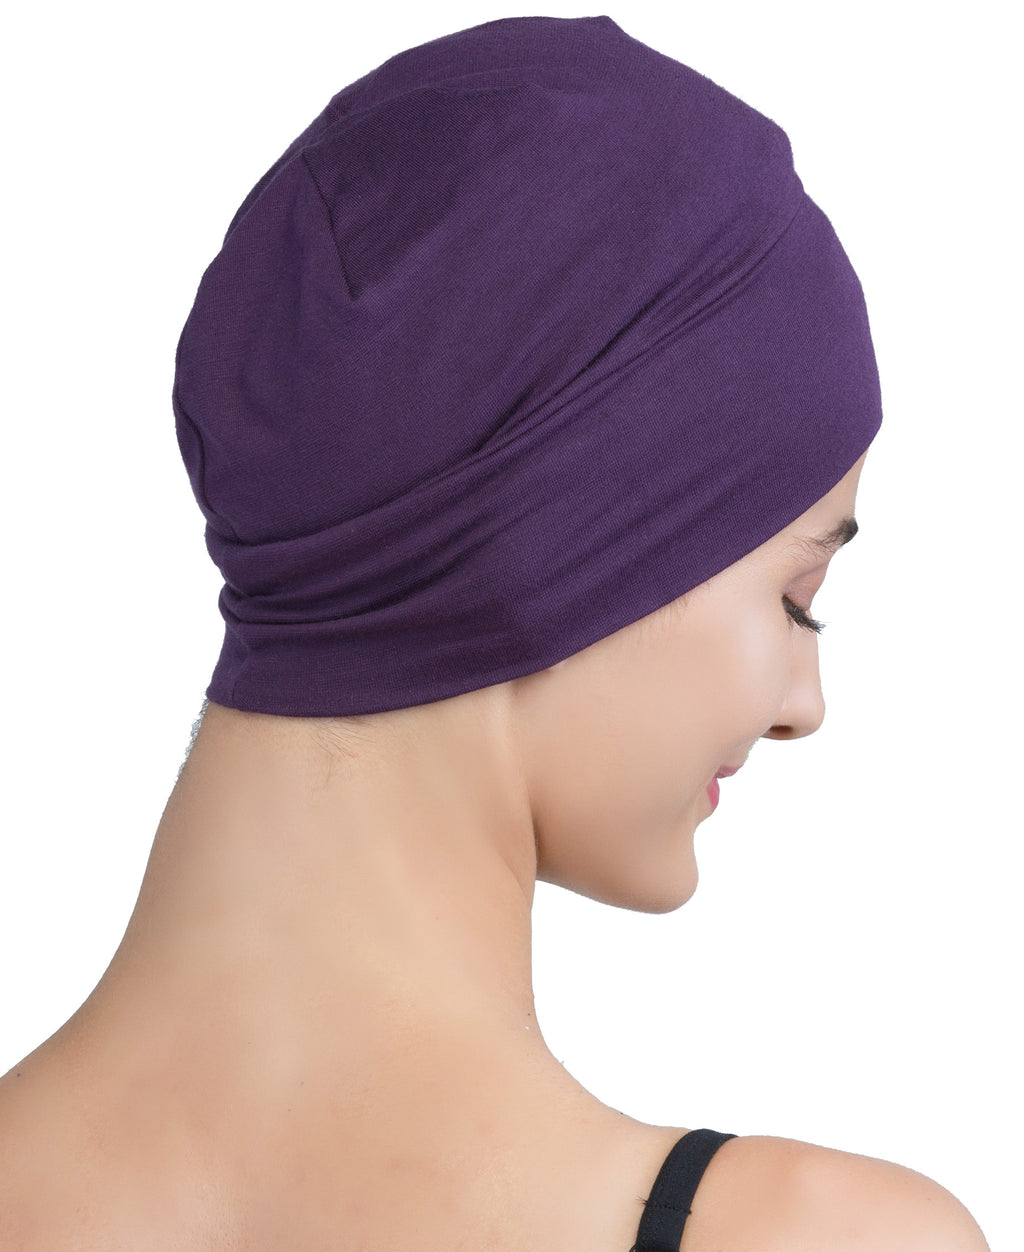 Wrap-fit Sleep Cap - Mulberry